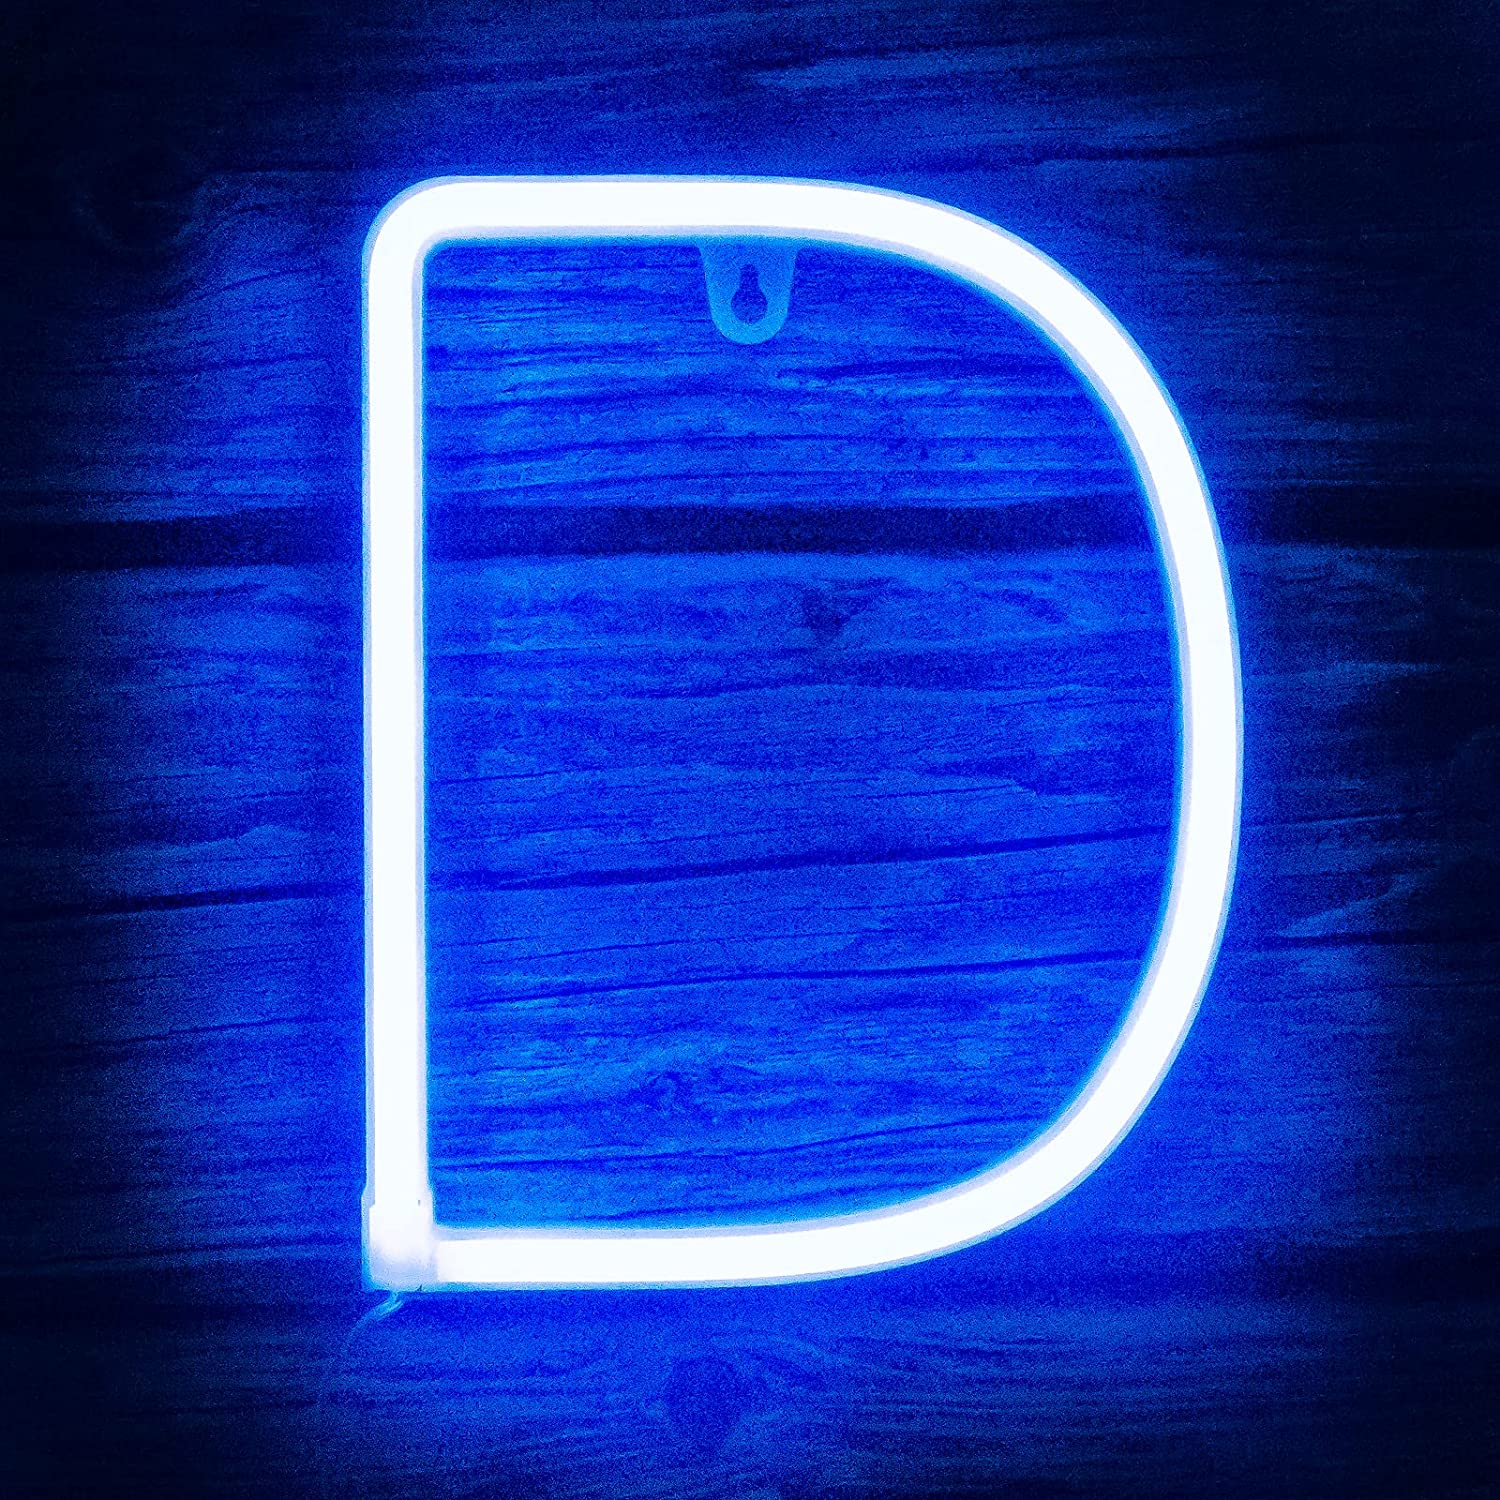 Light up Letters Neon Signs Lights for Bedroom Wall Decor, USB or Battery LED Neon Night Light Wall Decoration for Birthday, Party, Bar, Dorm, Men Cave, Girls, Kids Room Words Blue Letter D